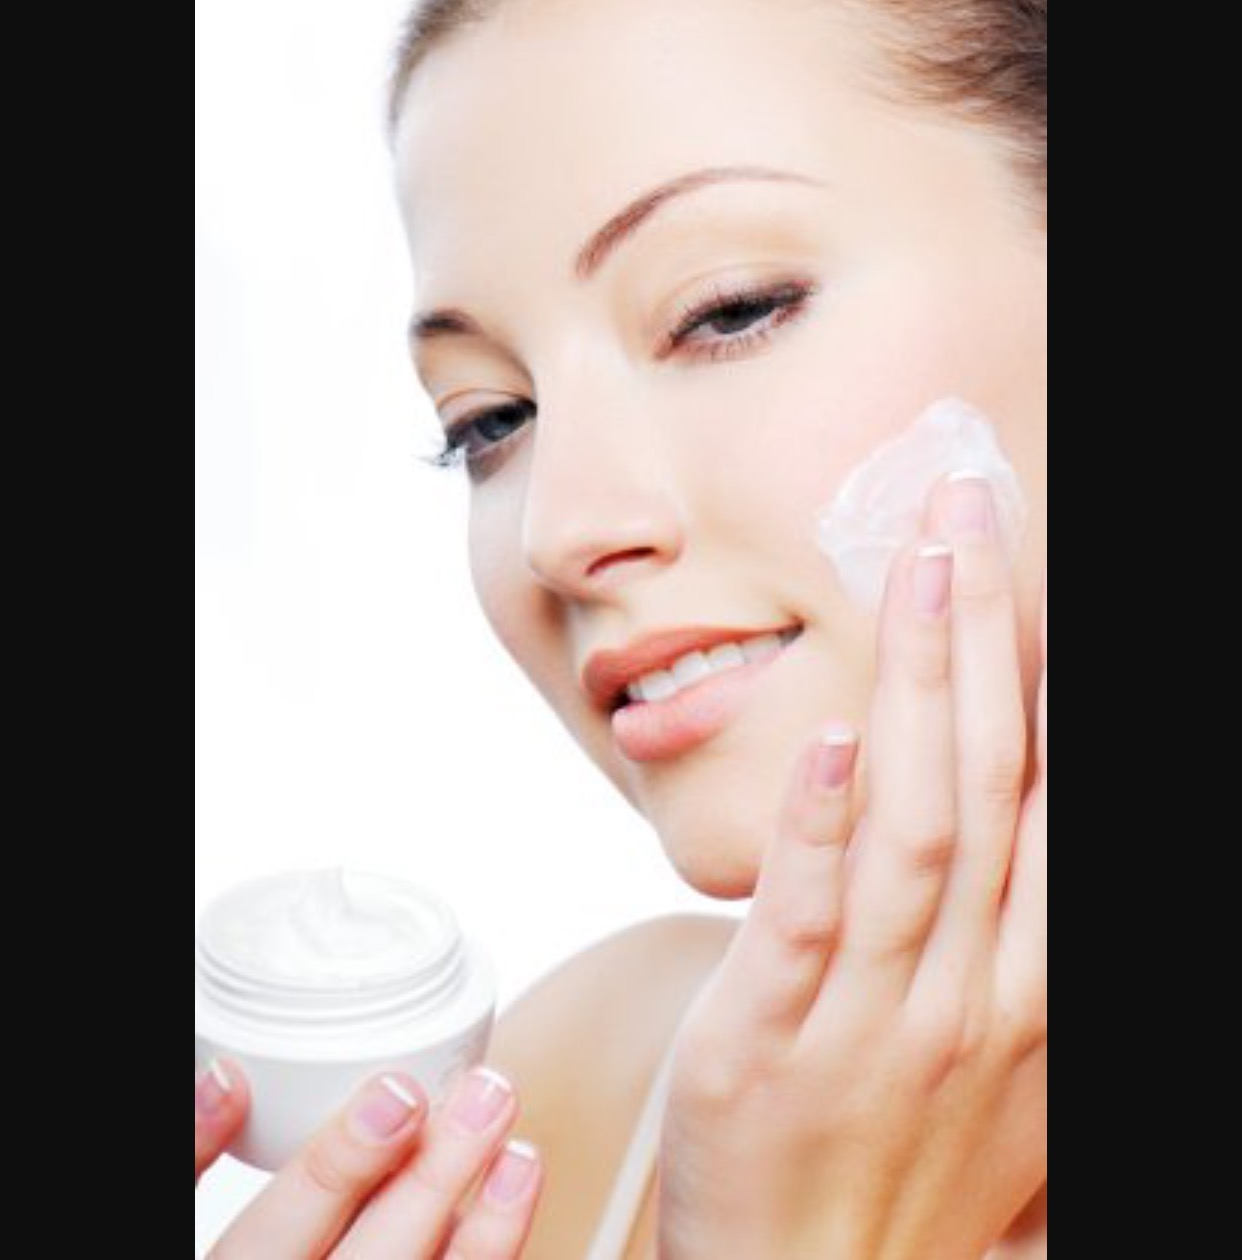 Dr. Usha Rajagopal recommends using skin moisturizers daily - image3-4